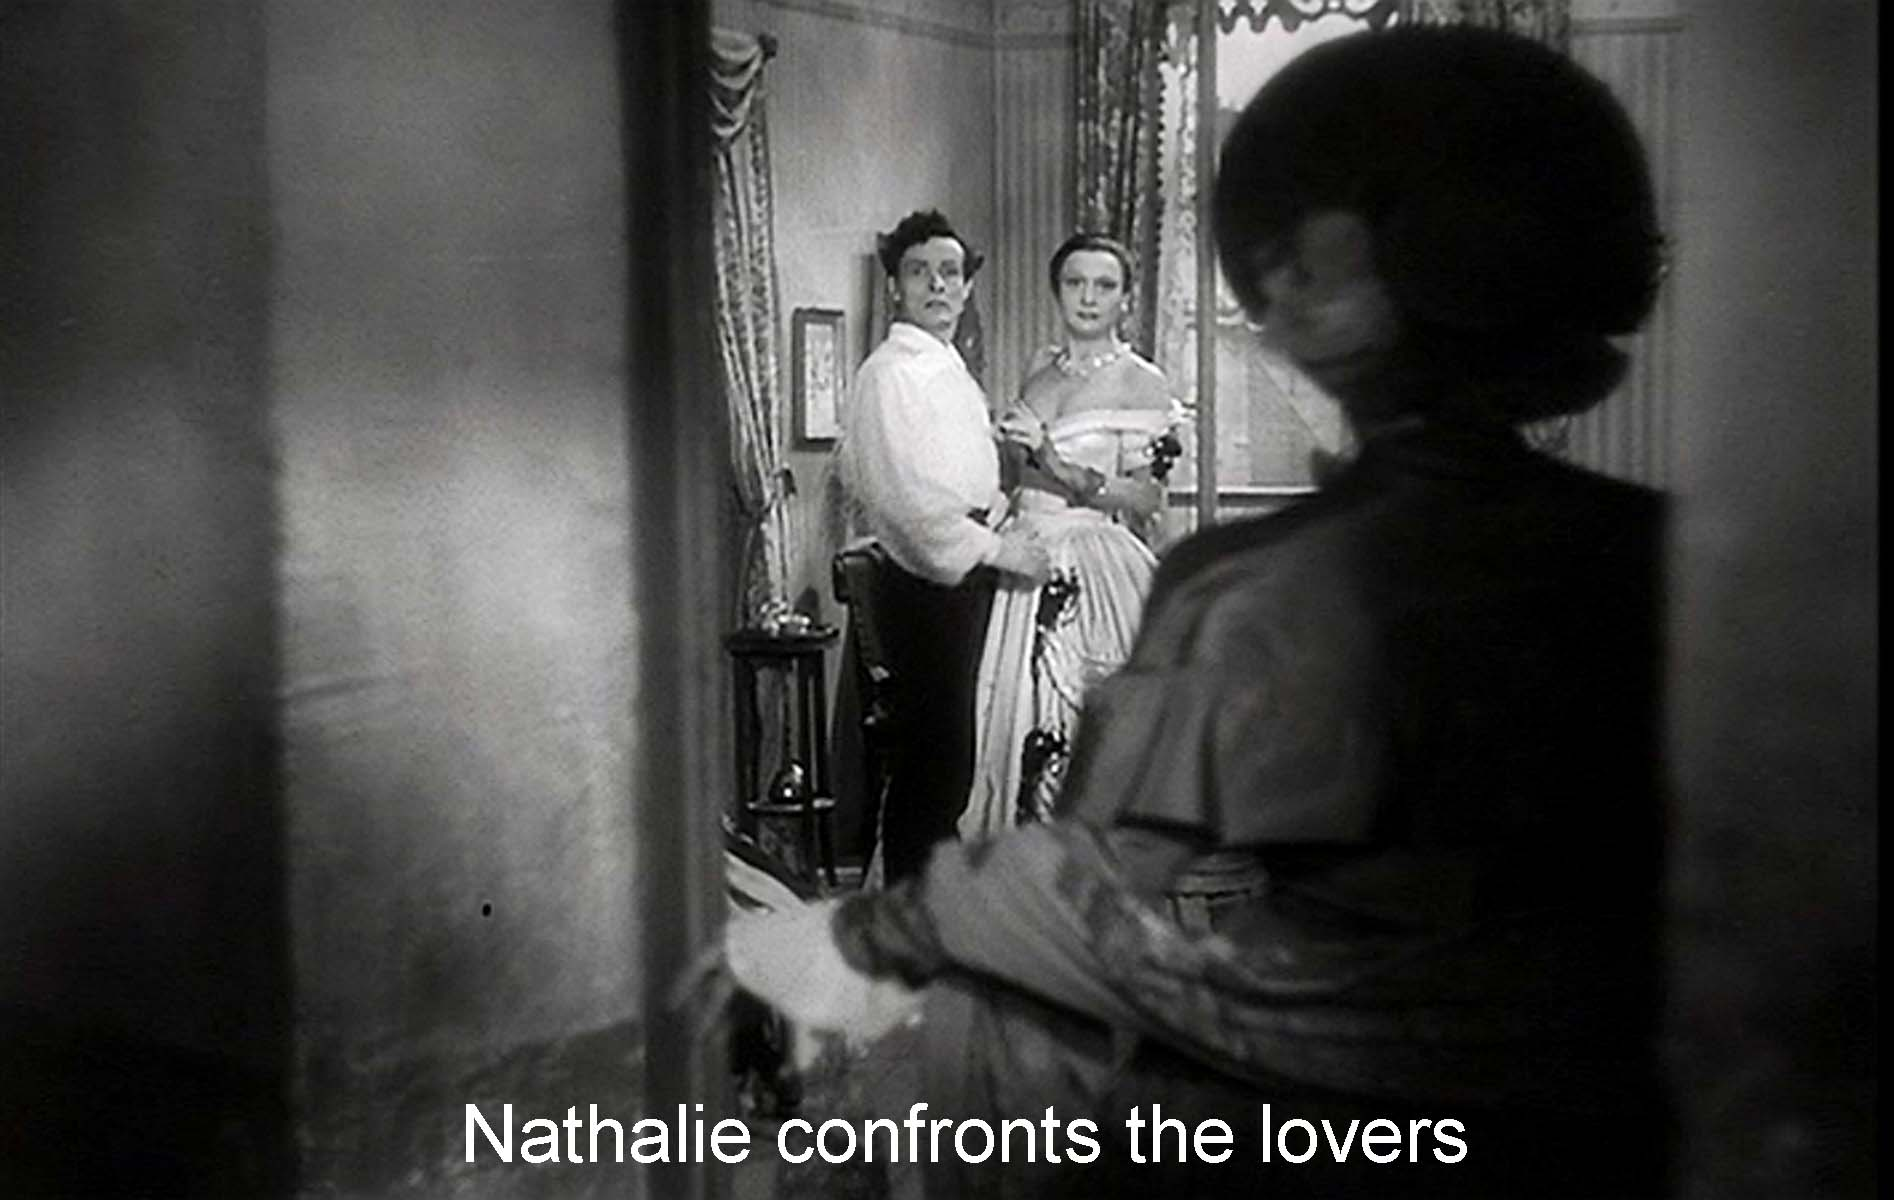 Nathalie confronts the lovers